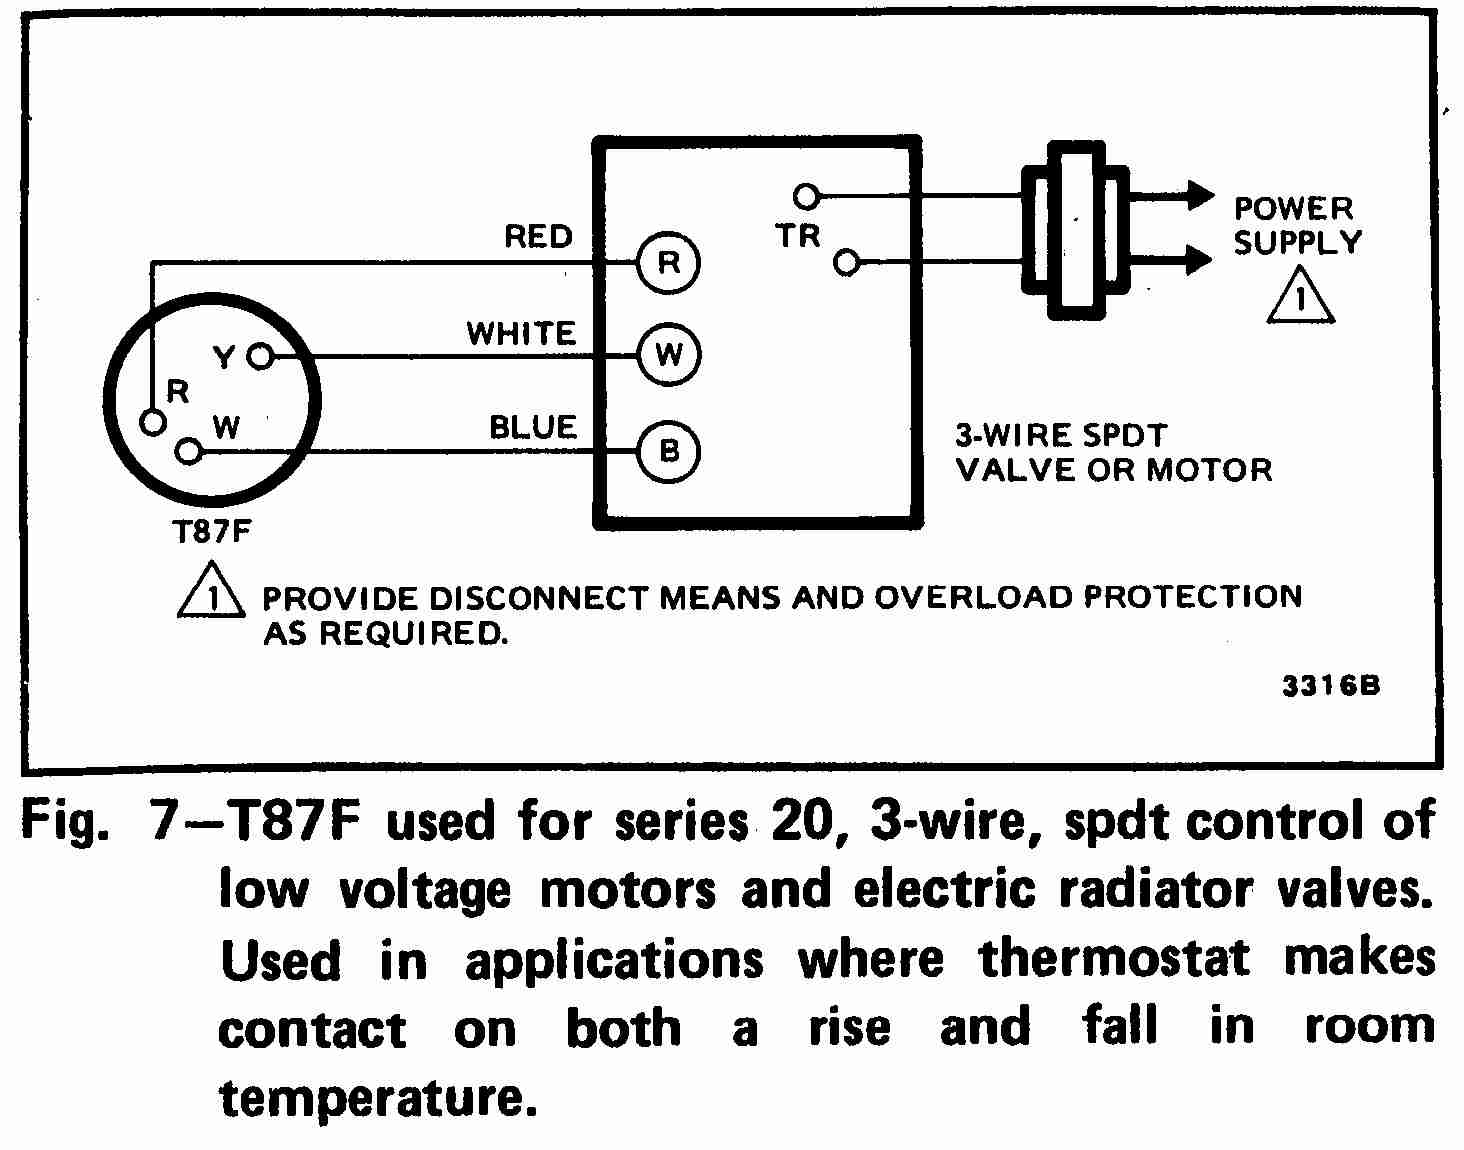 TT_T87F_0002_3W2_DJF room thermostat wiring diagrams for hvac systems wiring diagram honeywell thermostat at mifinder.co